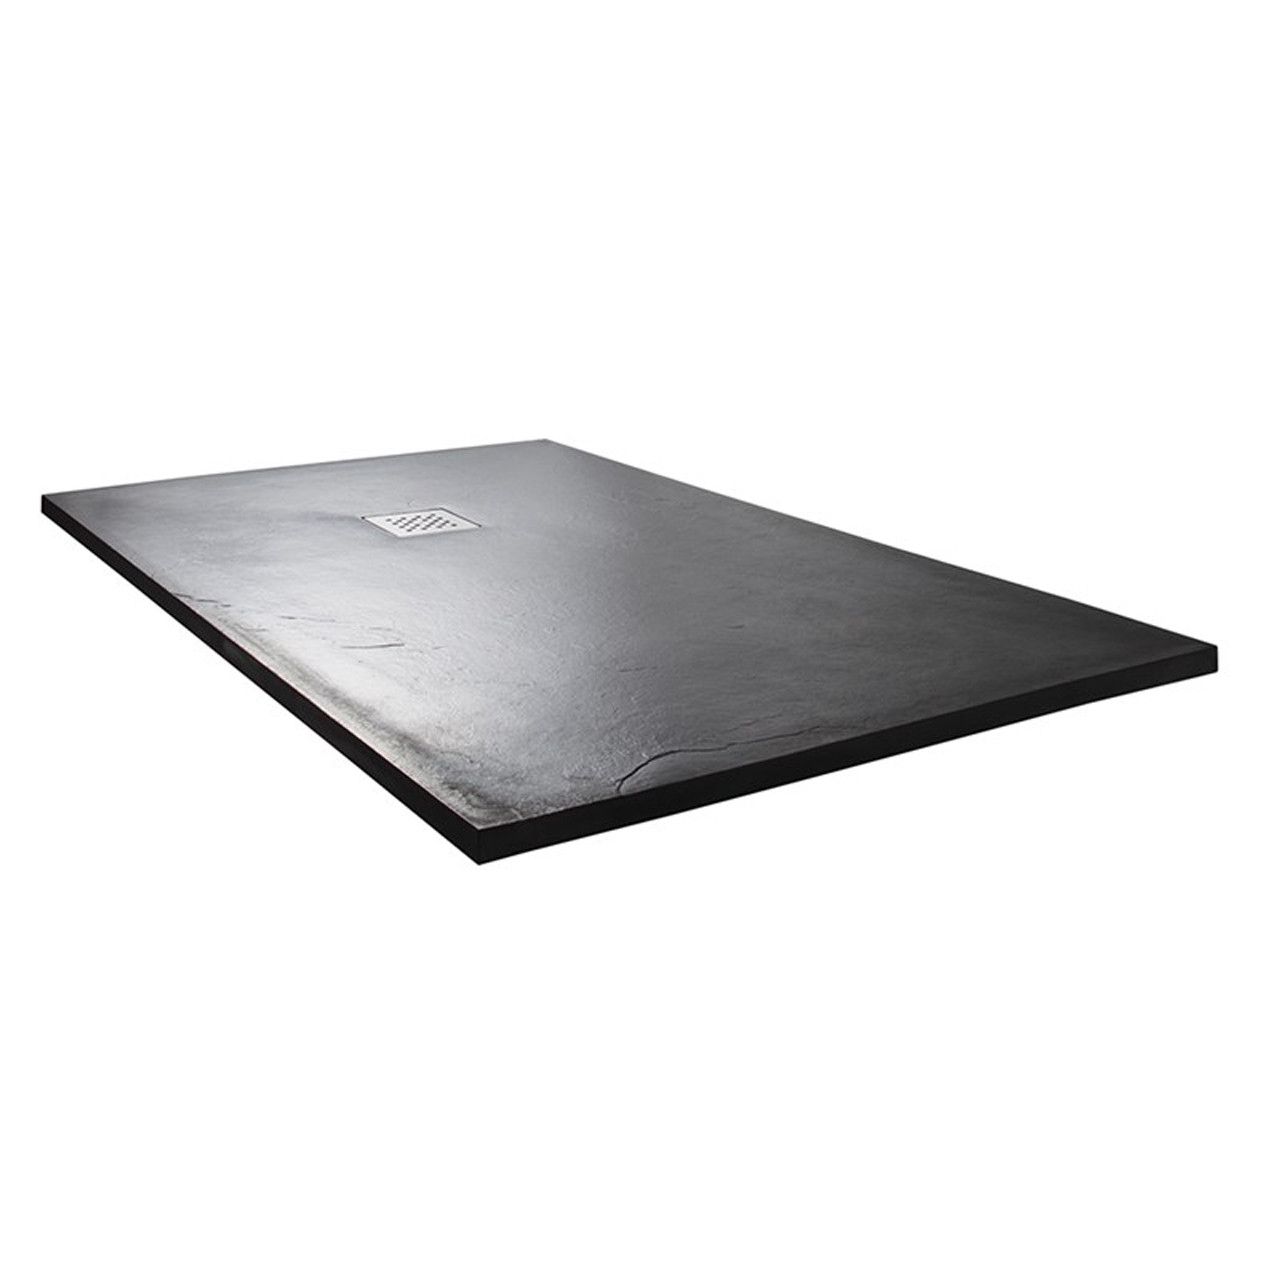 Wholestone Slate 1400mm x 800mm Anthracite Rectangular Shower Tray